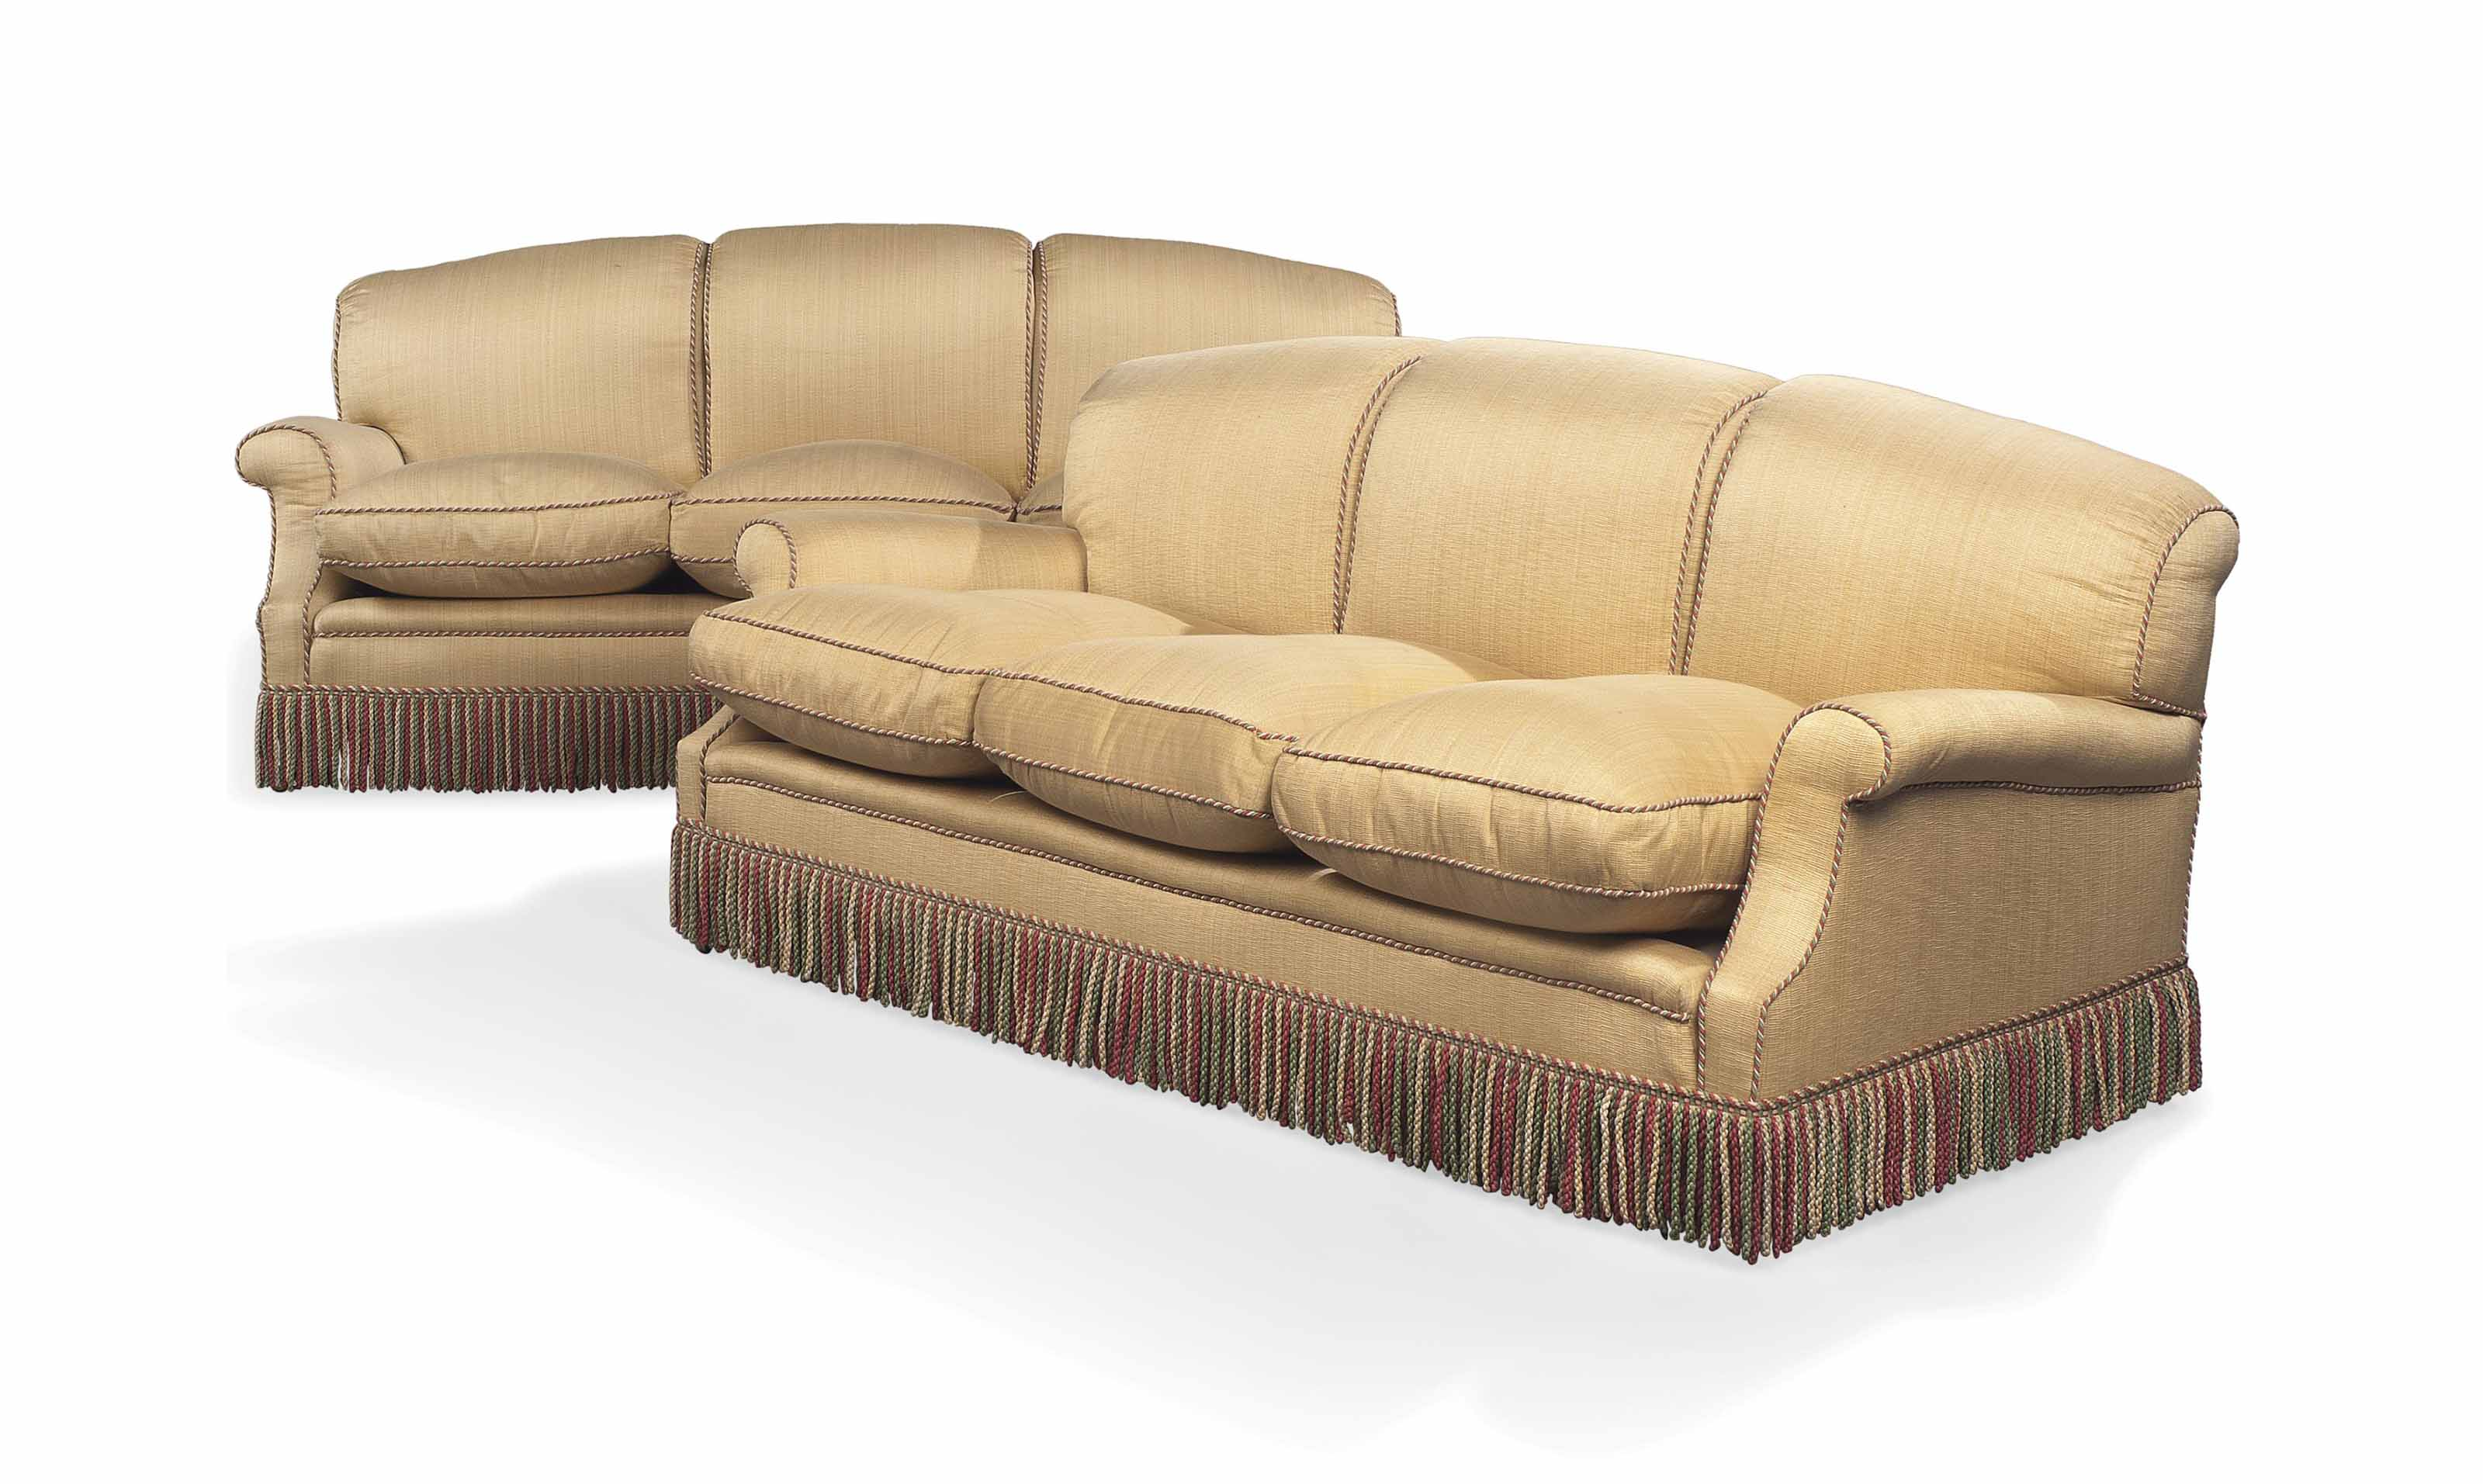 A PAIR OF CREAM UPHOLSTERED TH